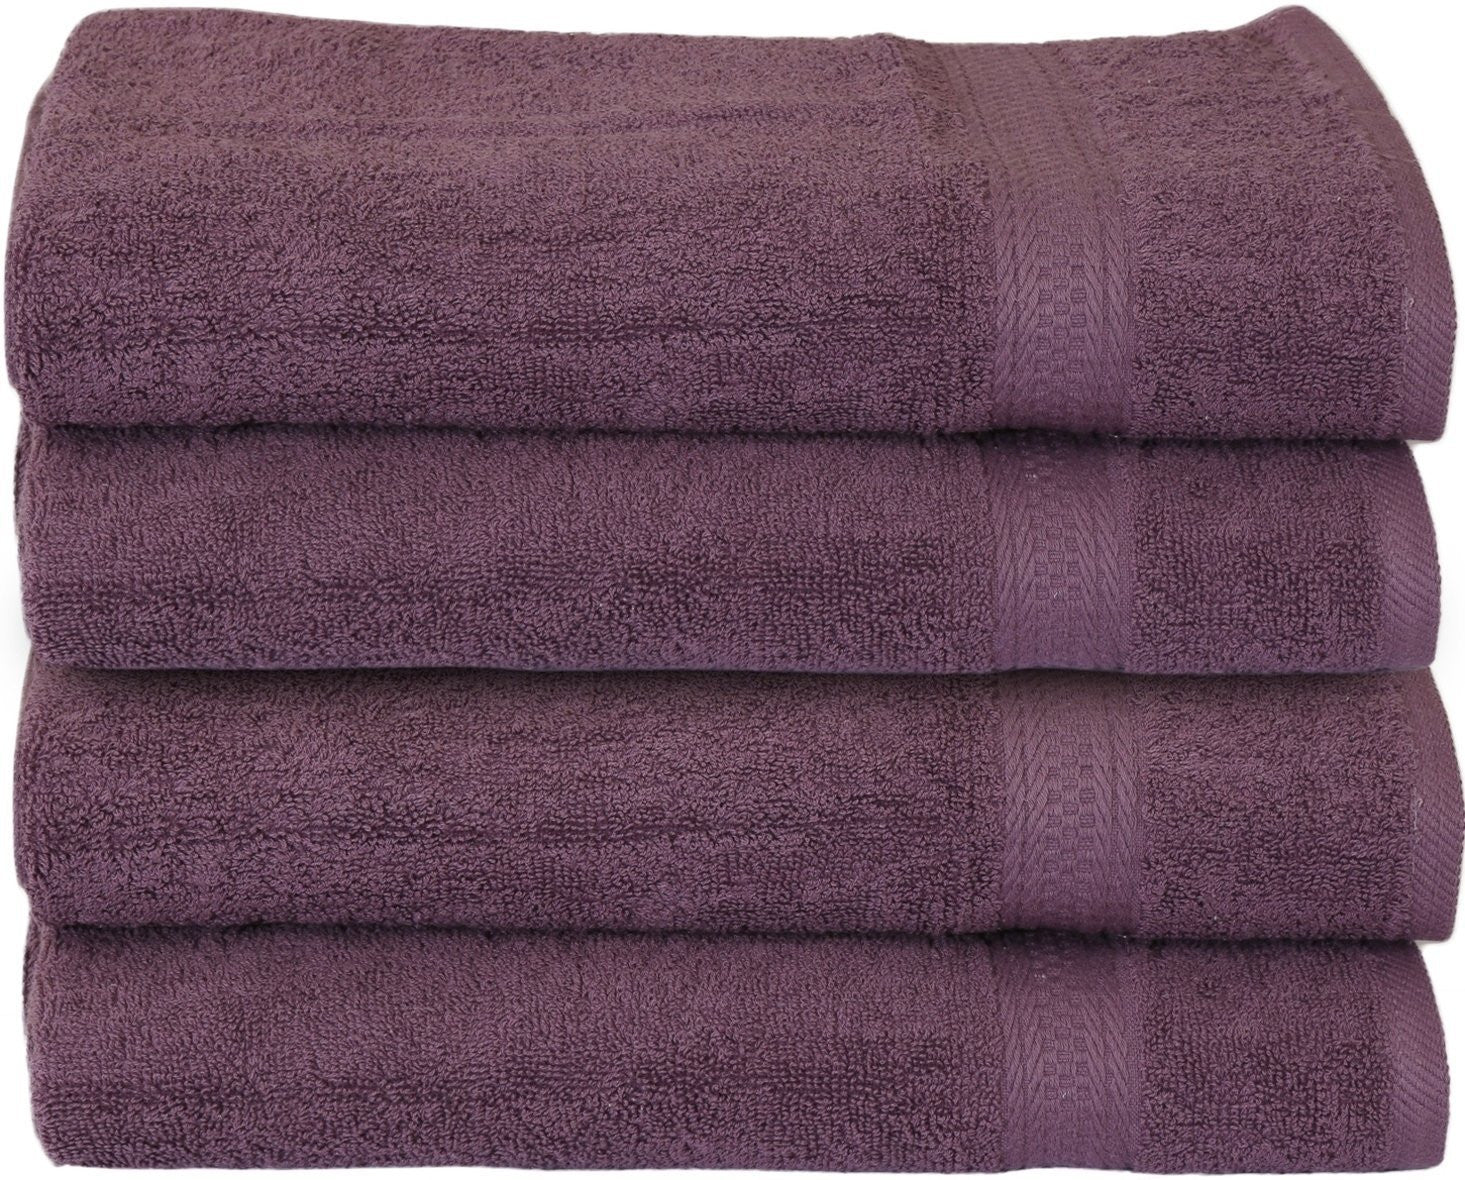 Luxury Cotton Hand Towels (Plum-4 Pack)